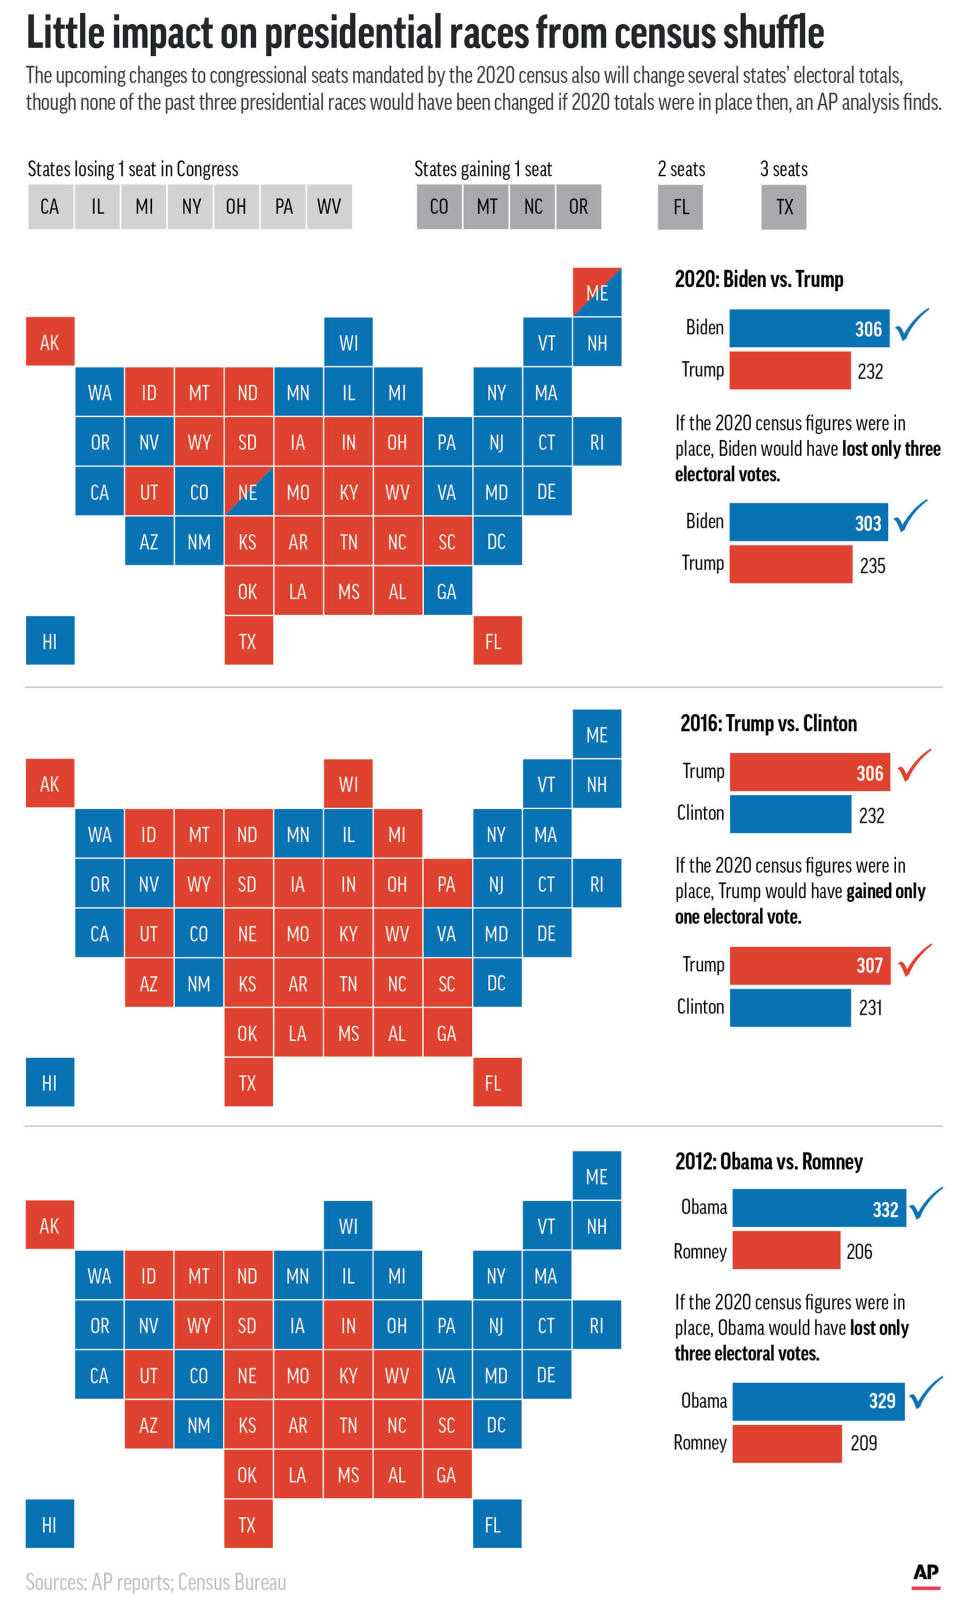 An AP analysis finds that none of the past three presidential races would have been changed if the apportionments of electoral votes mandated by the 2020 census had been in place. (AP Graphic)